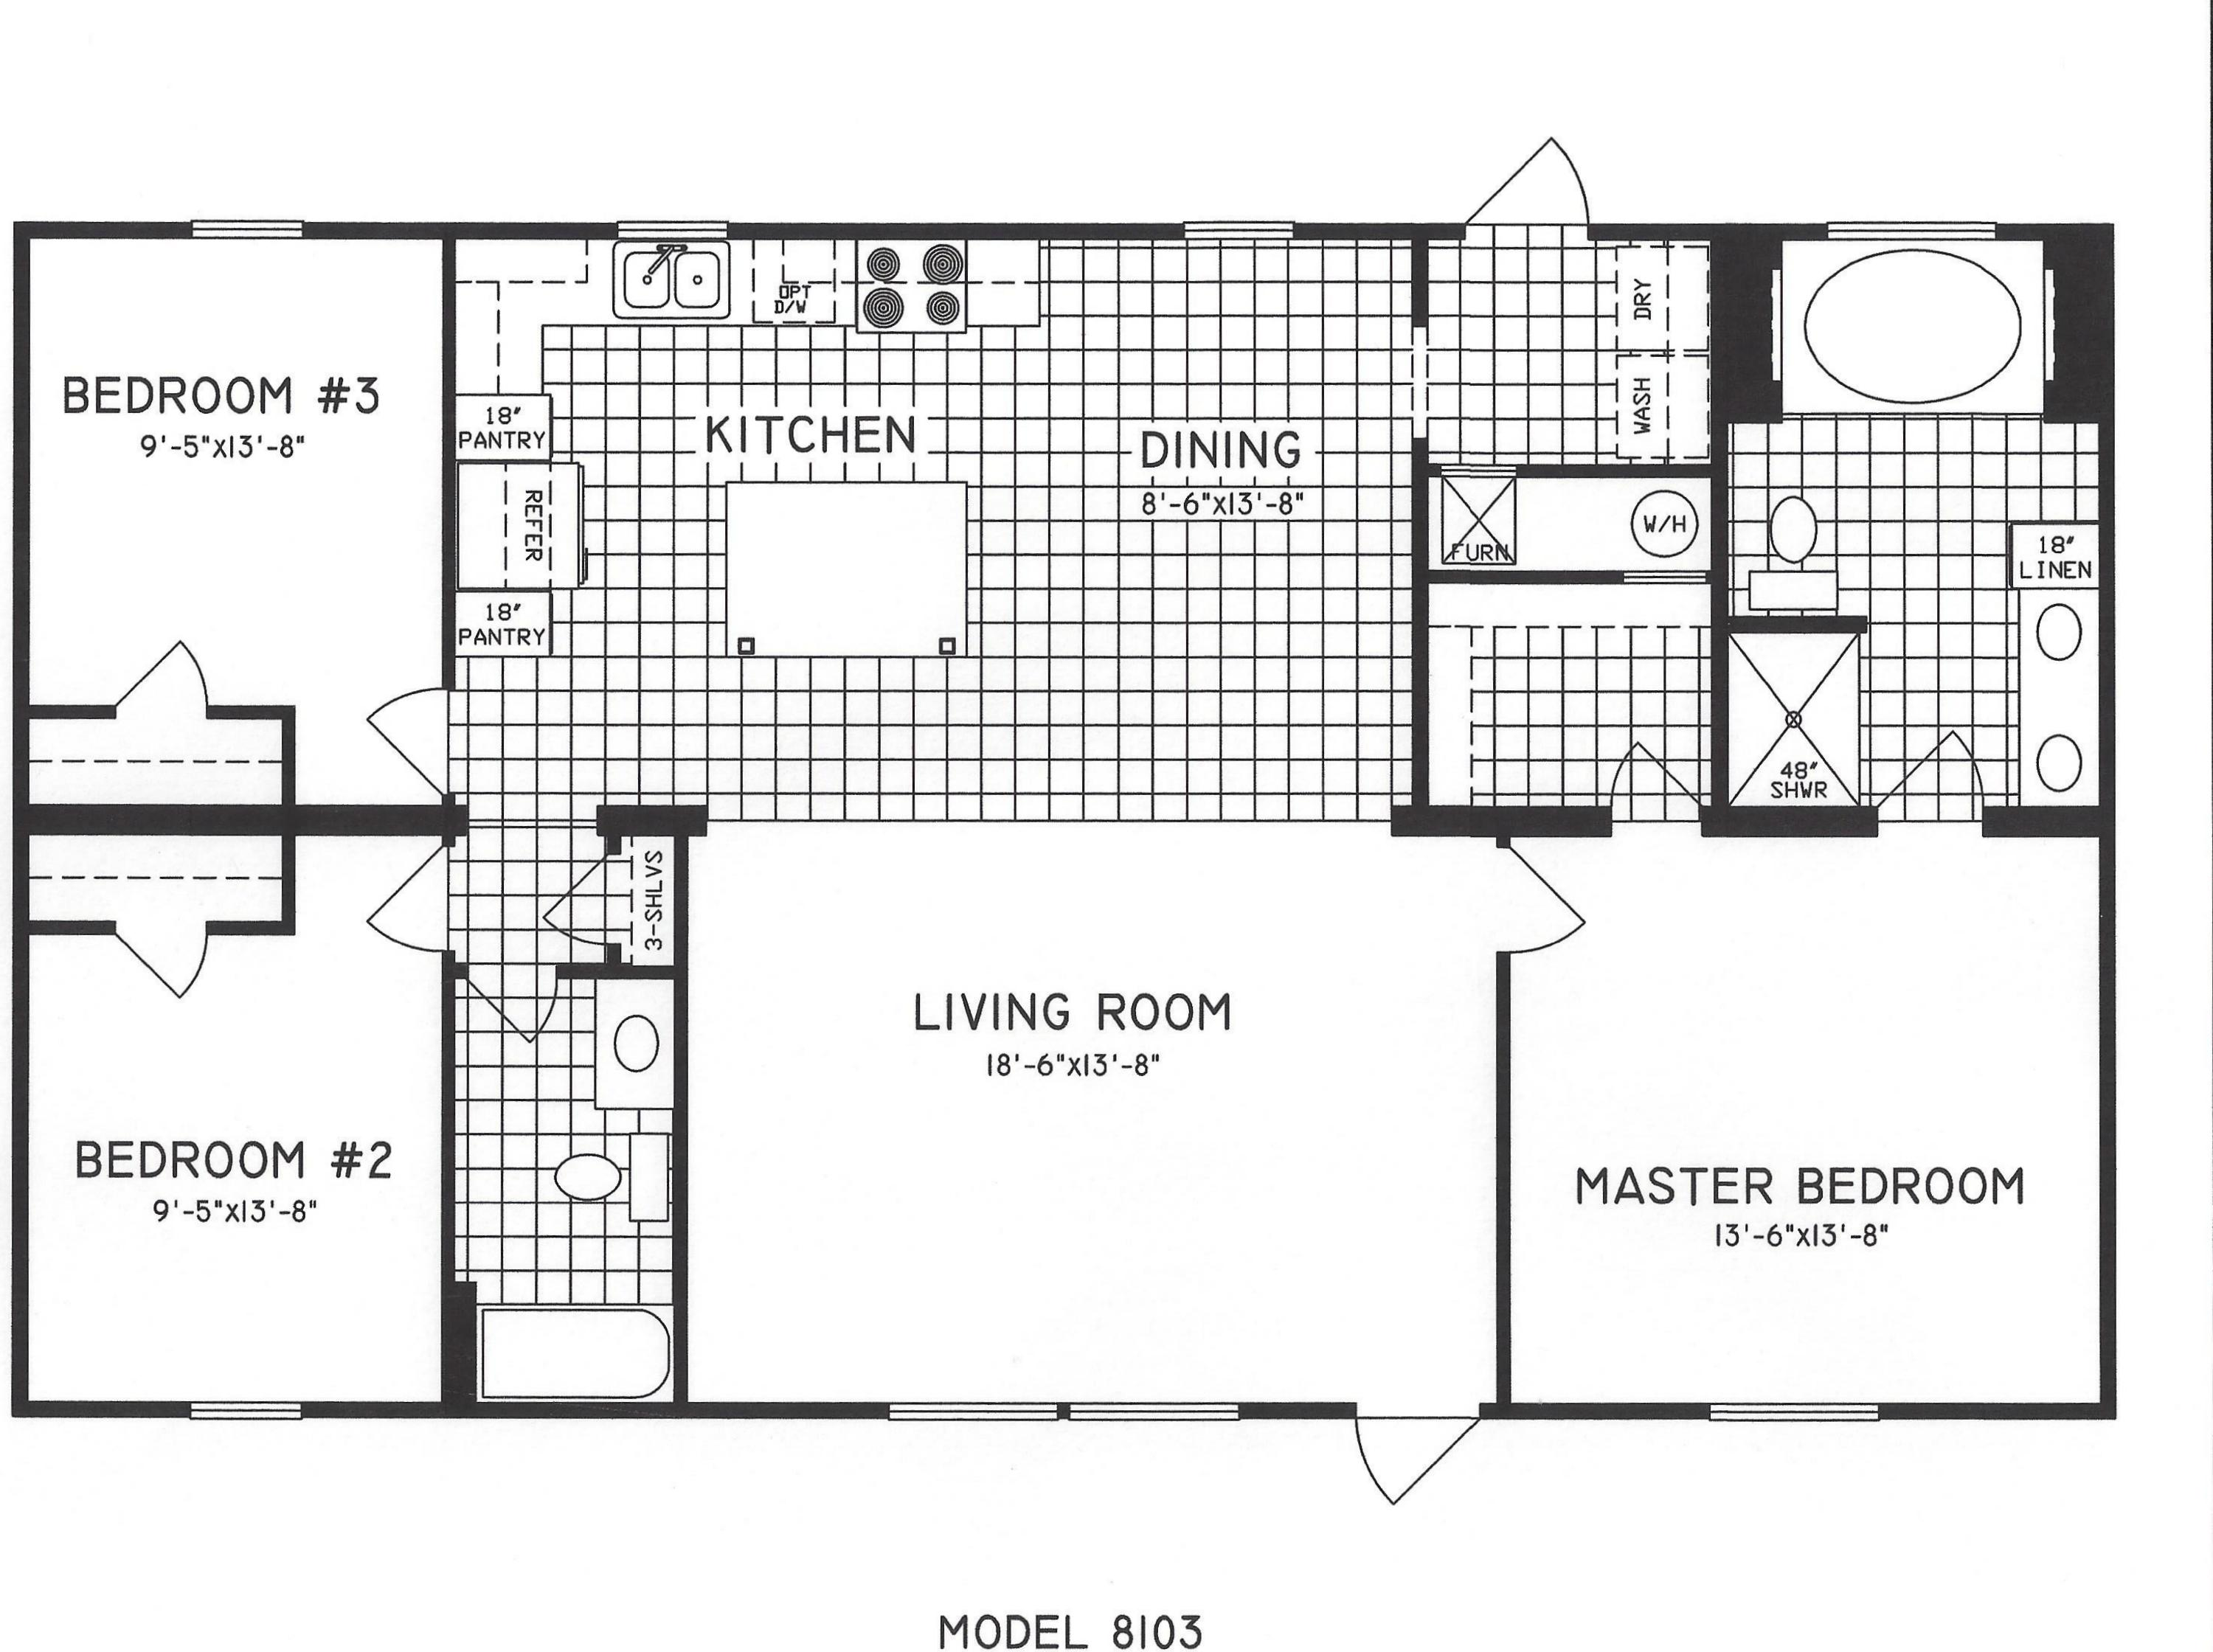 3 bedroom floor plan c 8103 hawks homes manufactured for Home floor plans